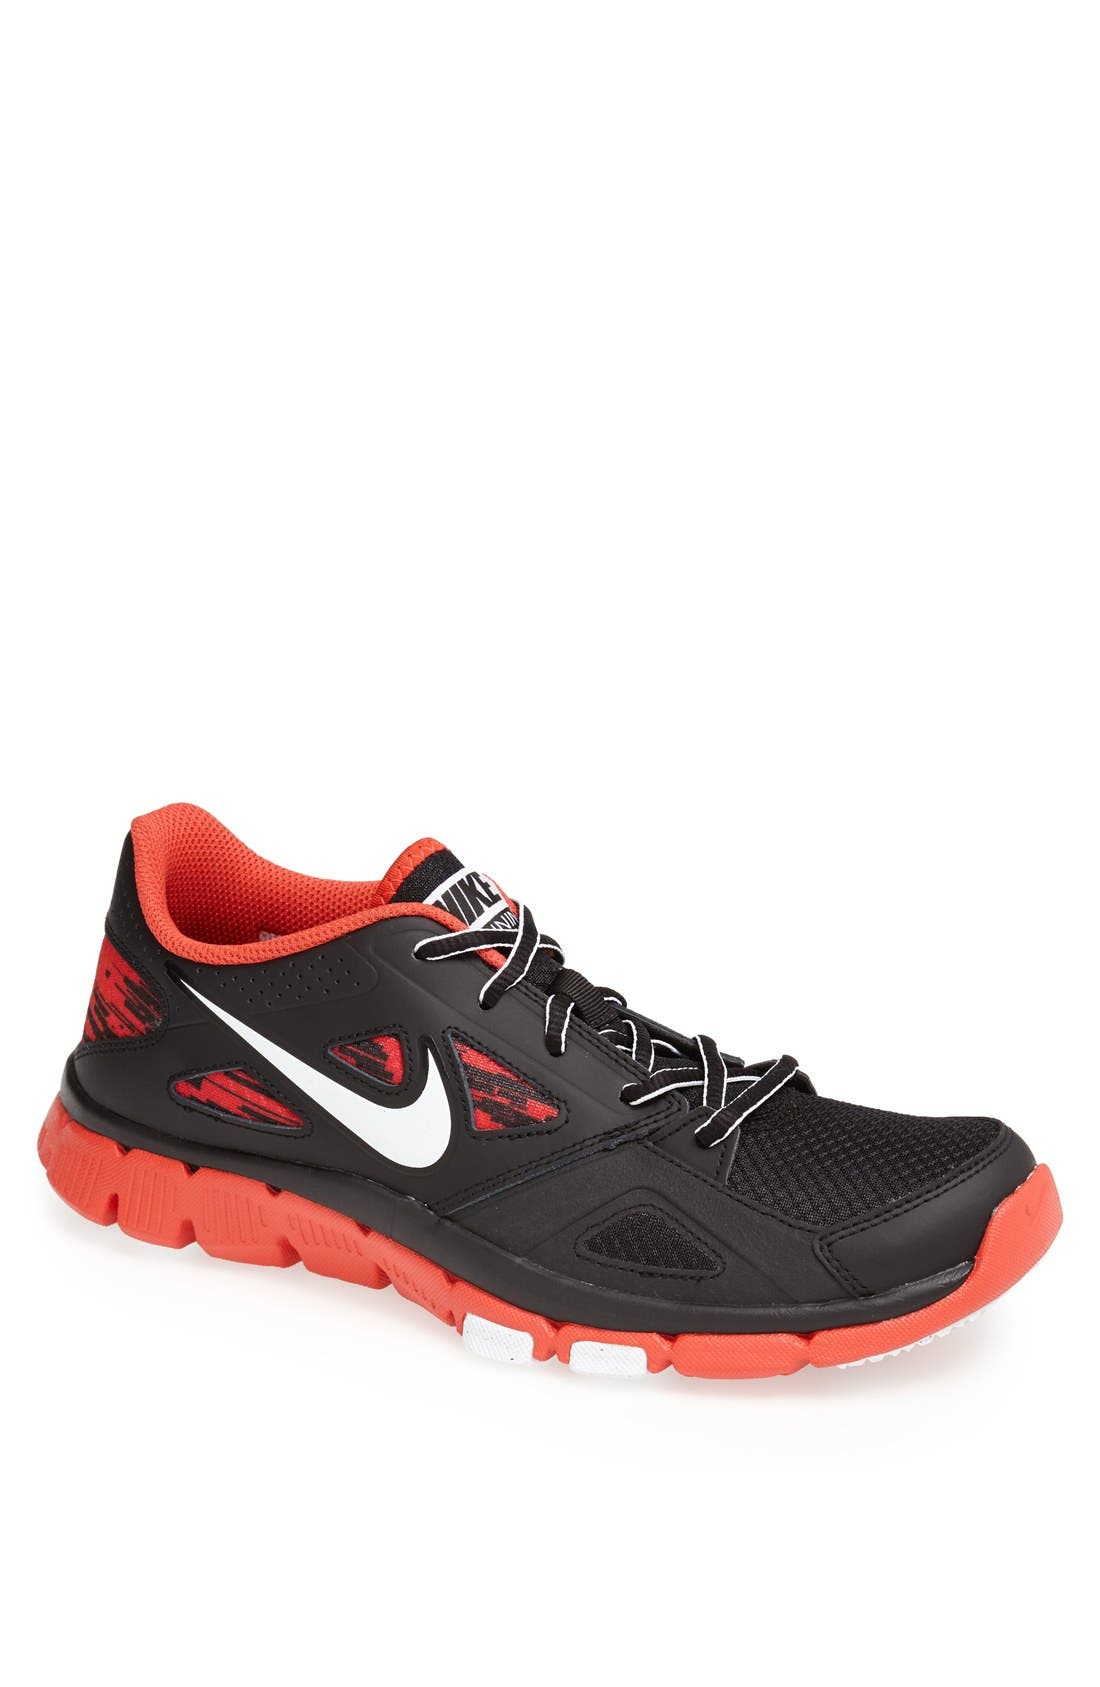 Alternate Image 1 Selected - Nike 'Flex Supreme TR 2' Training Shoe (Men)